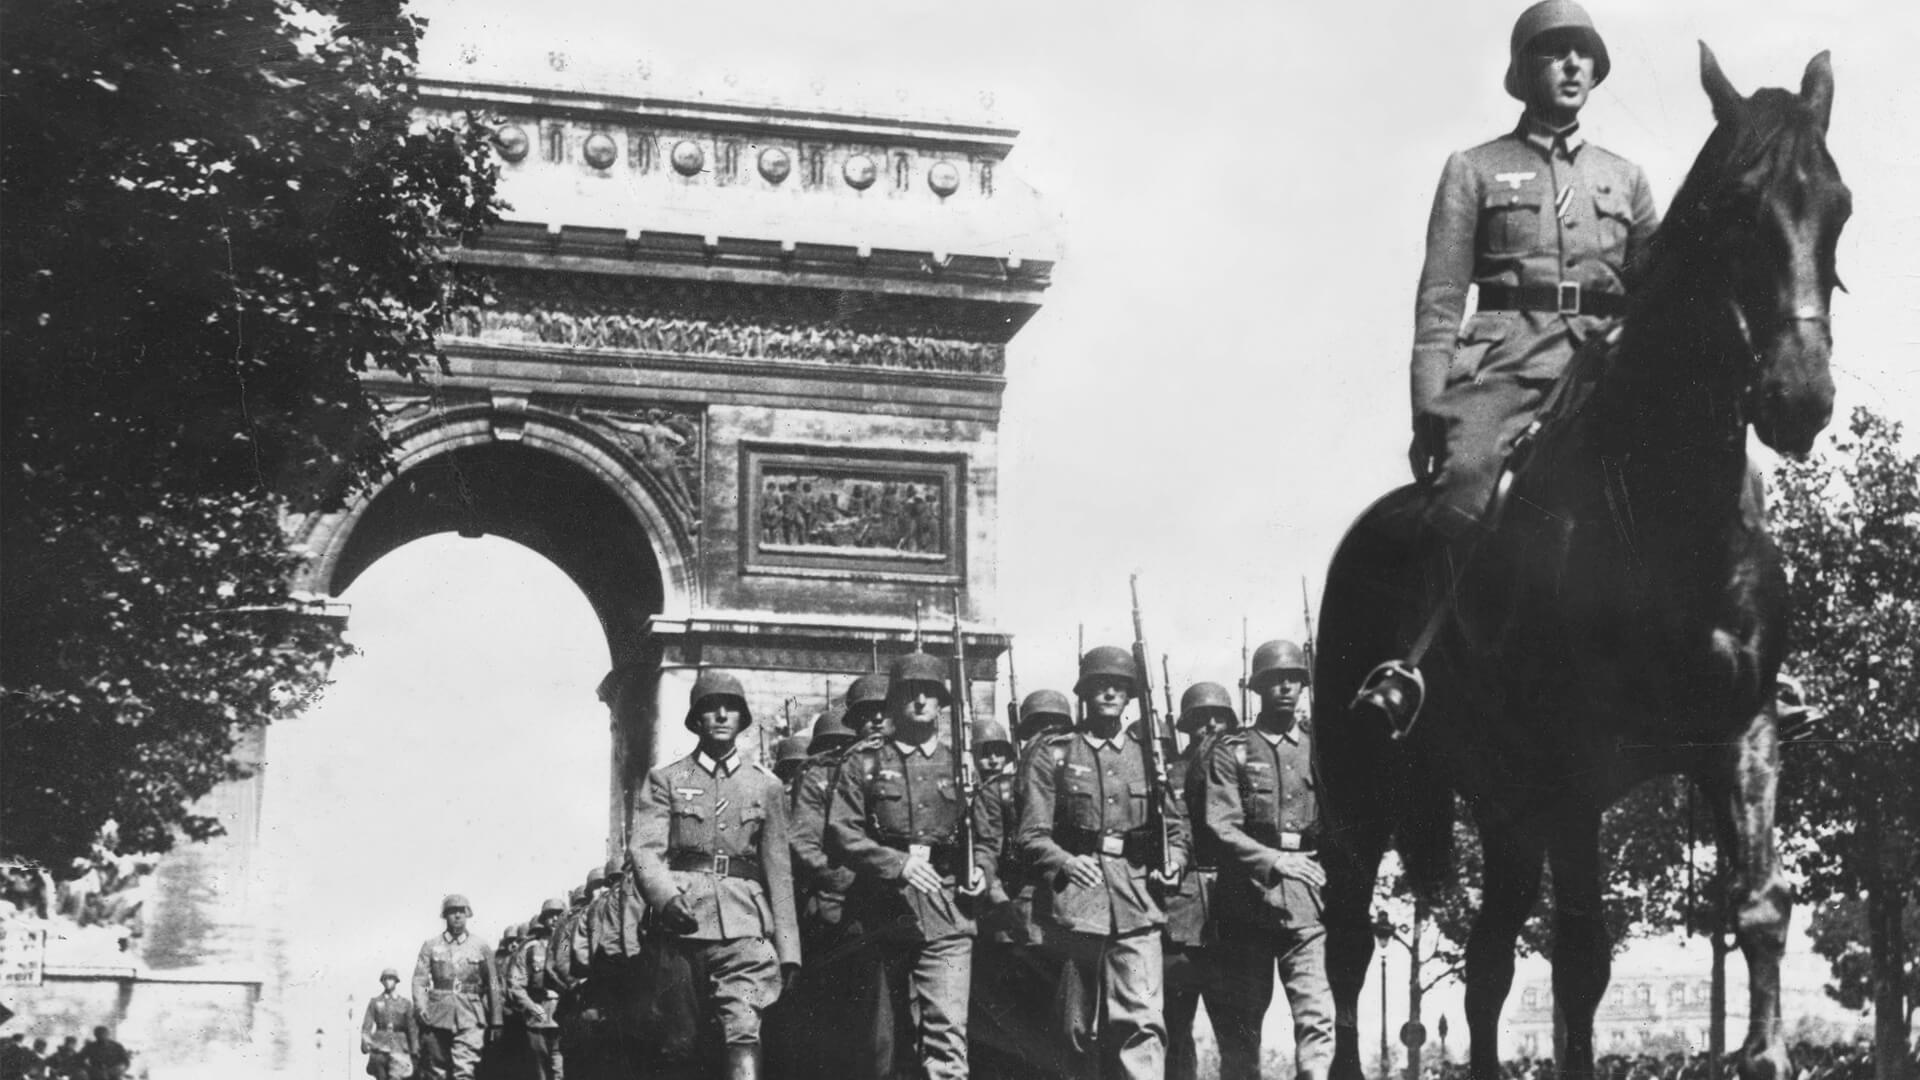 German troops march through the Champs Elysees, Paris, France